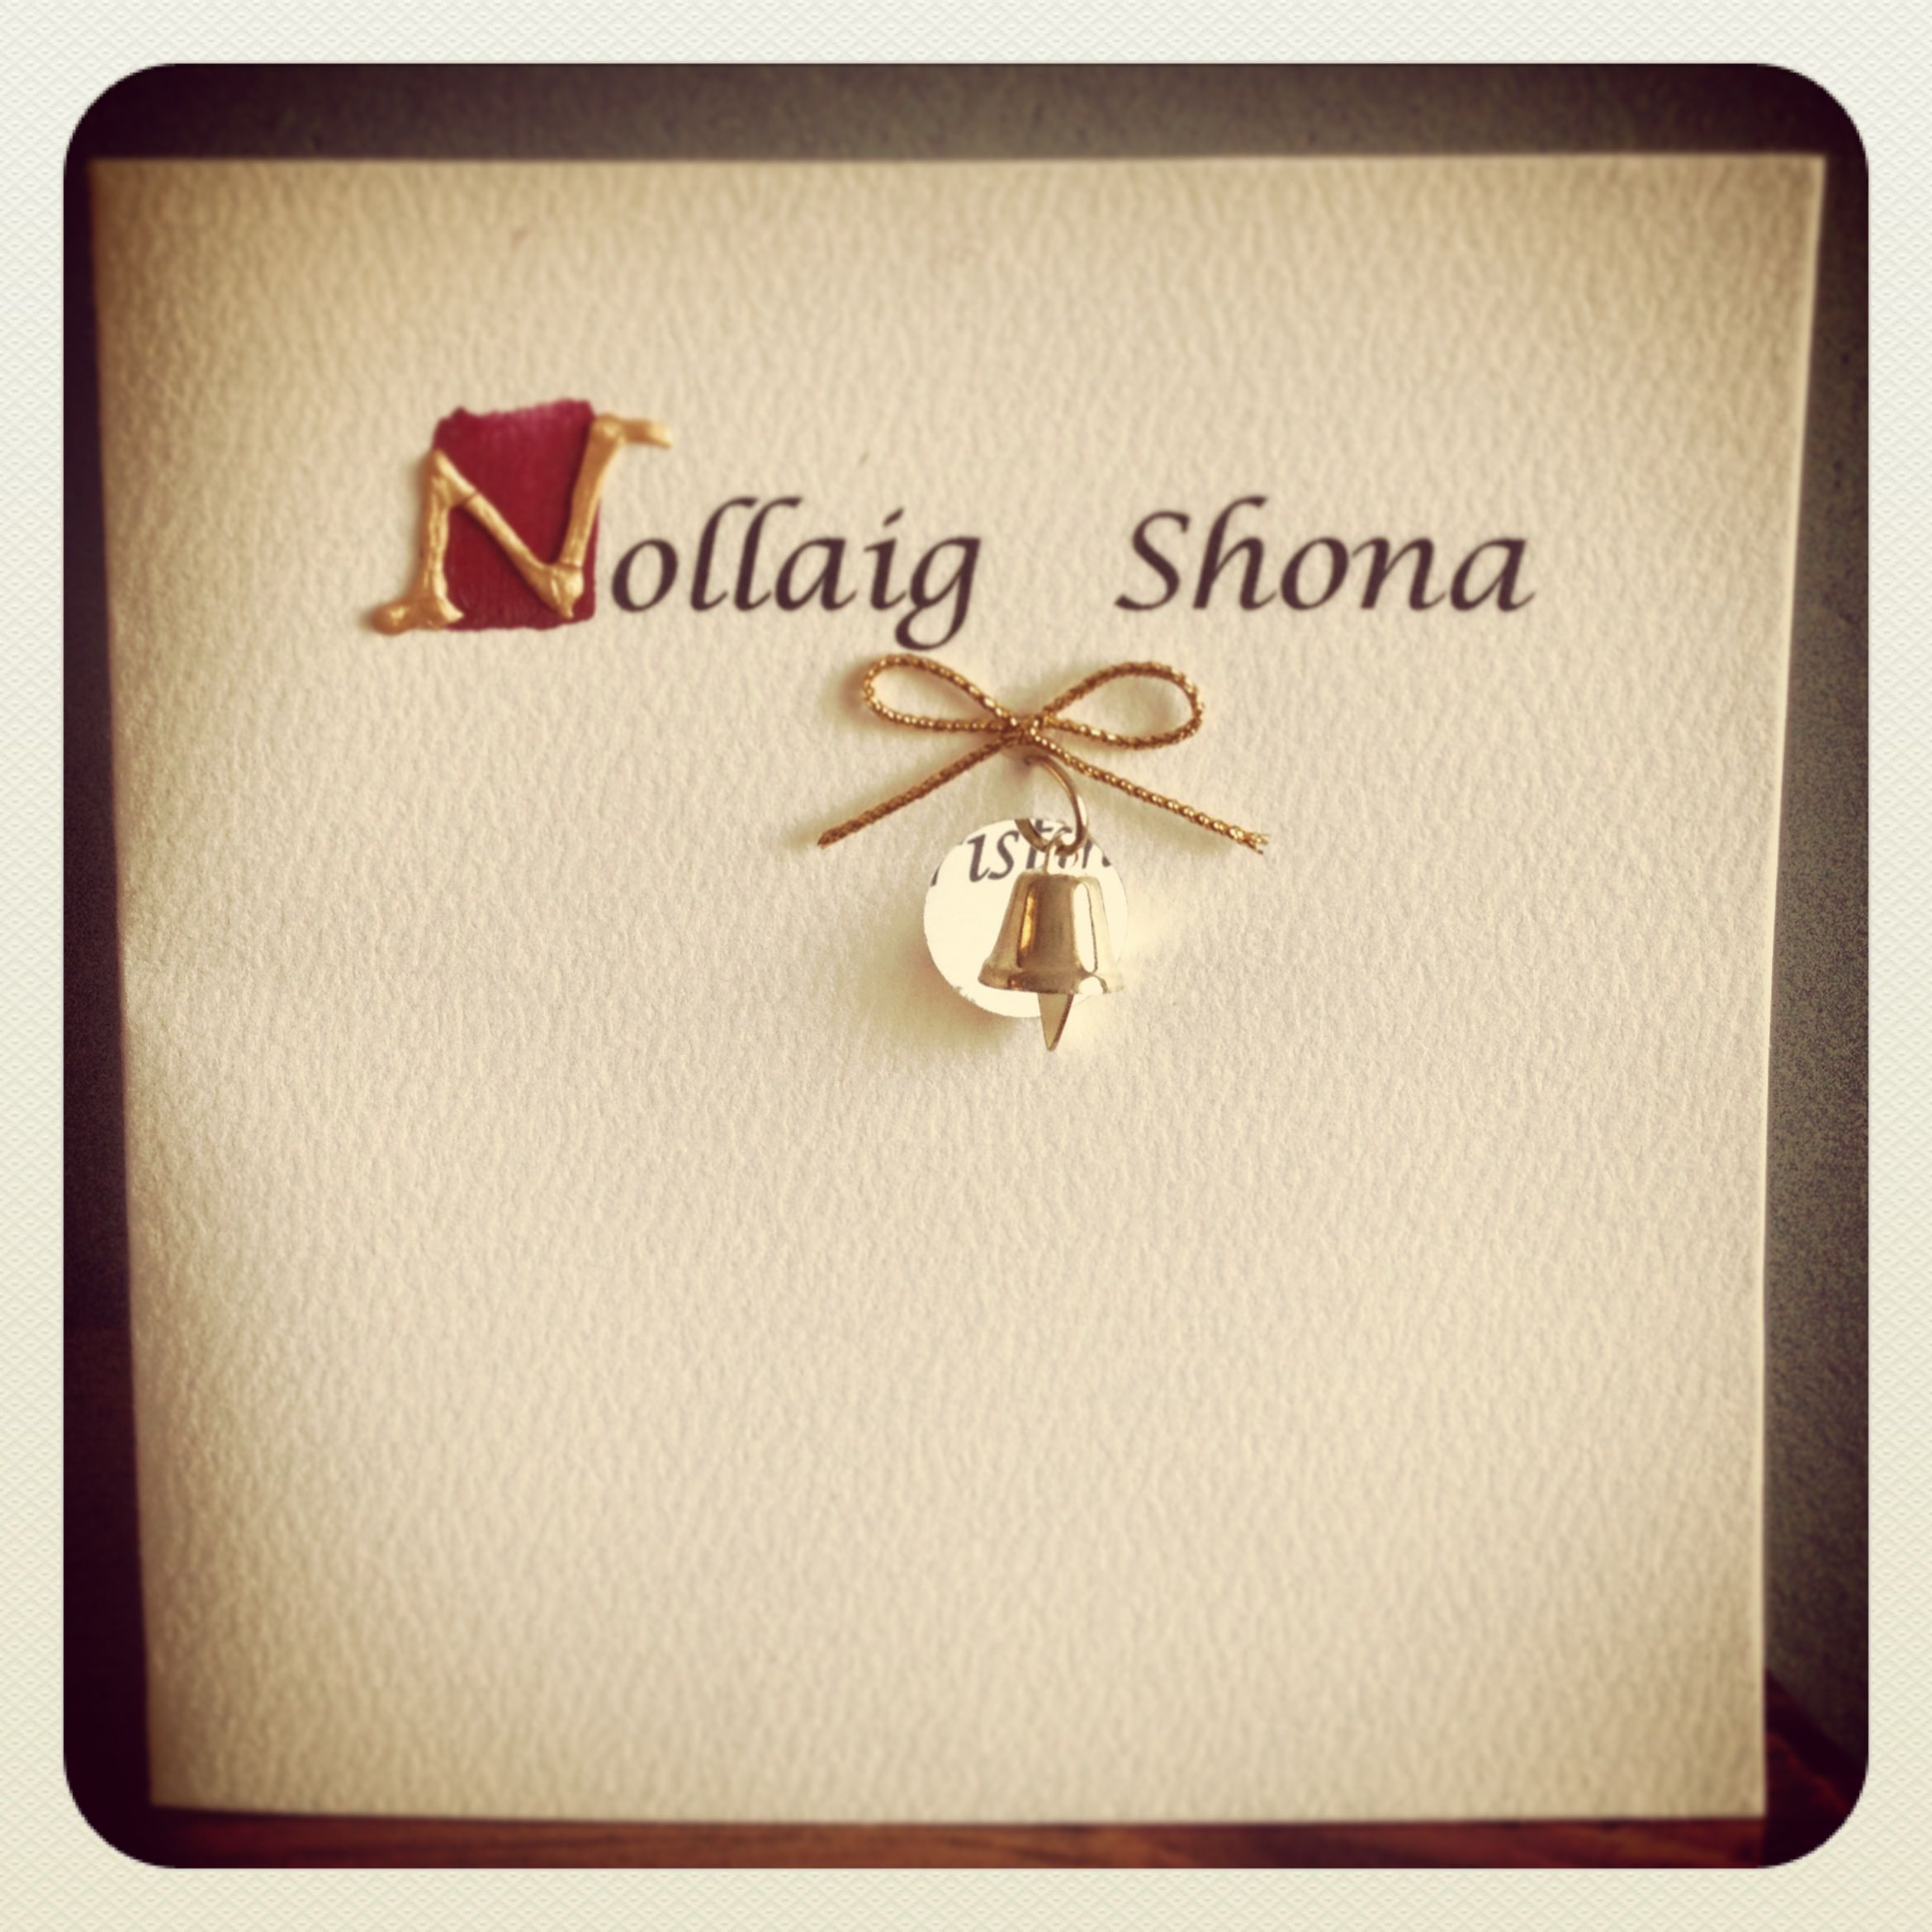 Nollaig Shona Merry Christmas. ( Happy Christmas